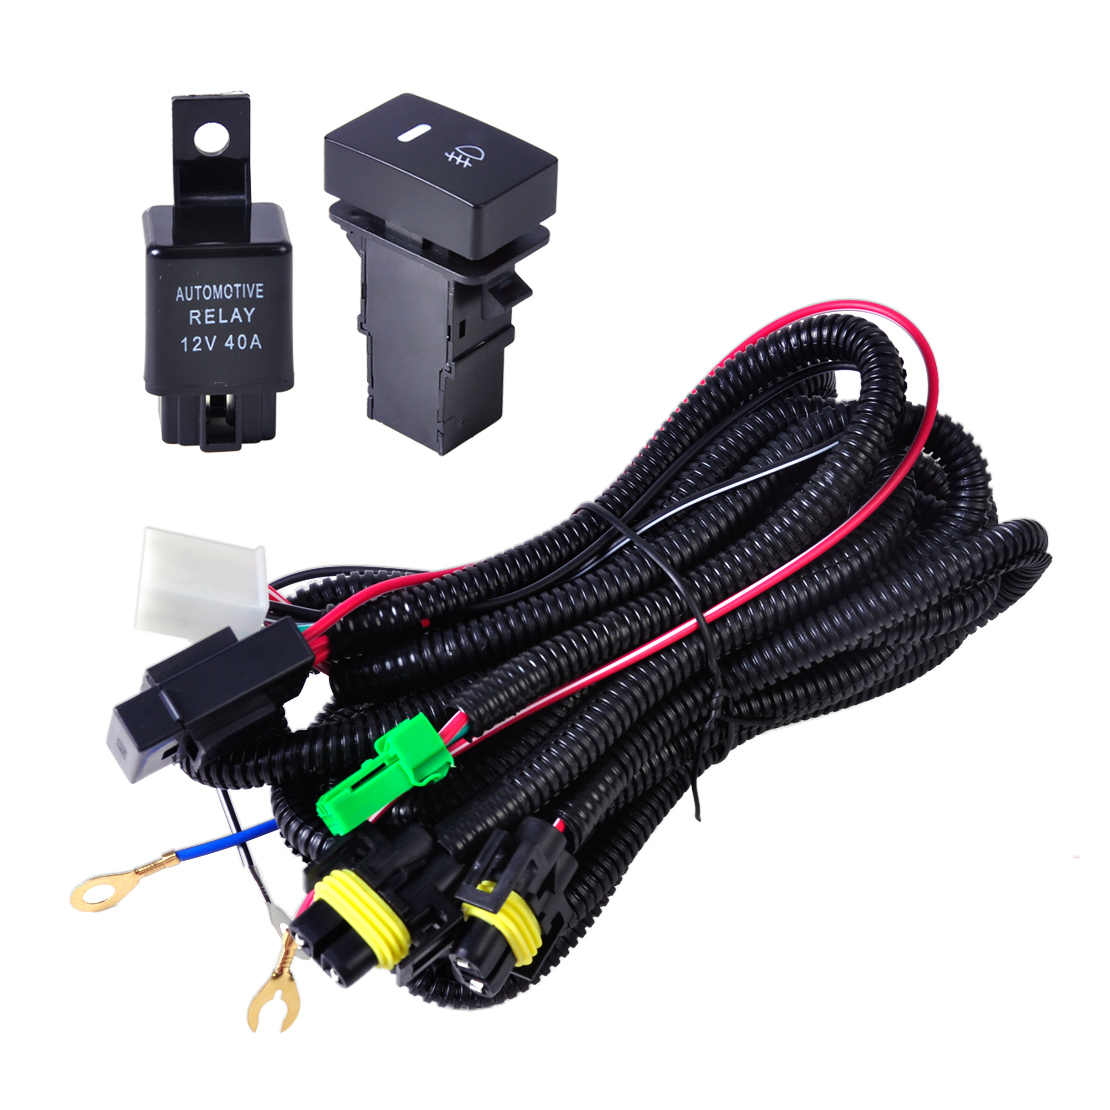 hight resolution of  citall h11 fog light lamp wiring harness sockets wire switch with led indicators automotive relay